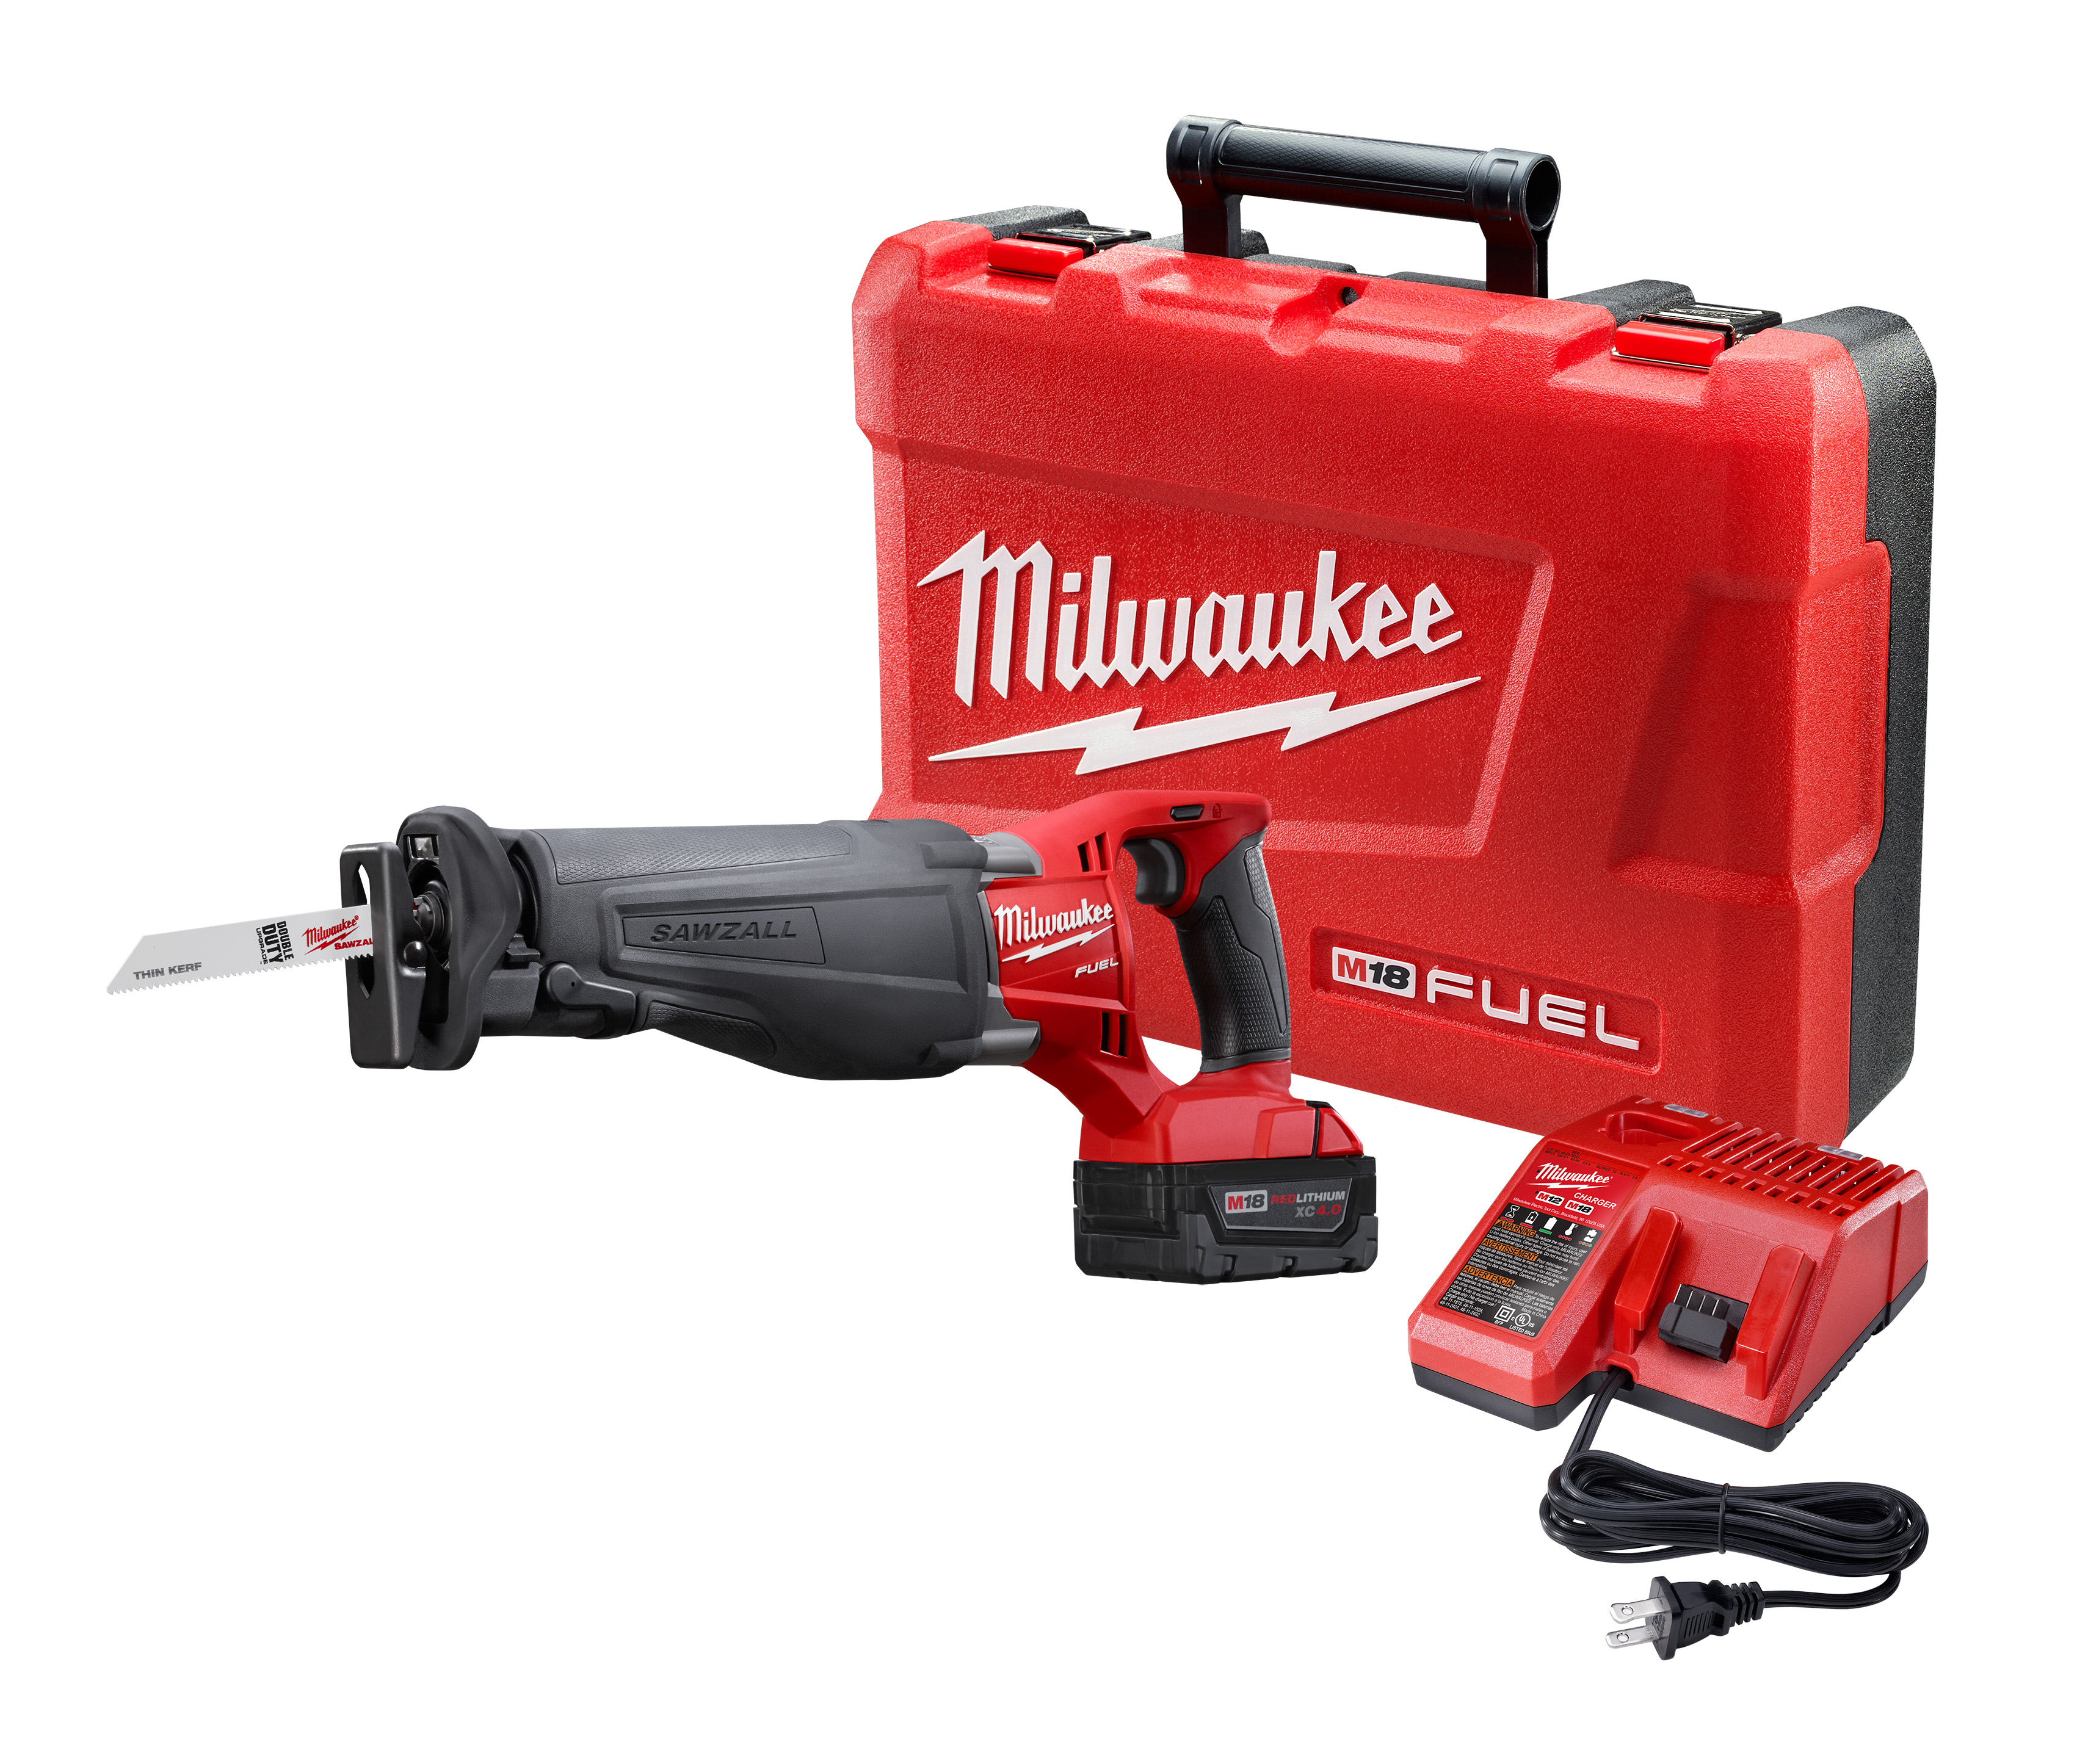 Milwaukee® M18 FUEL™ SAWZALL® 2720-21 Adjustable Shoe Cordless Reciprocating Saw Kit, 1-1/8 in L Stroke, 0 to 3000 spm, Straight Cut, 18 VDC, 18-1/2 in OAL